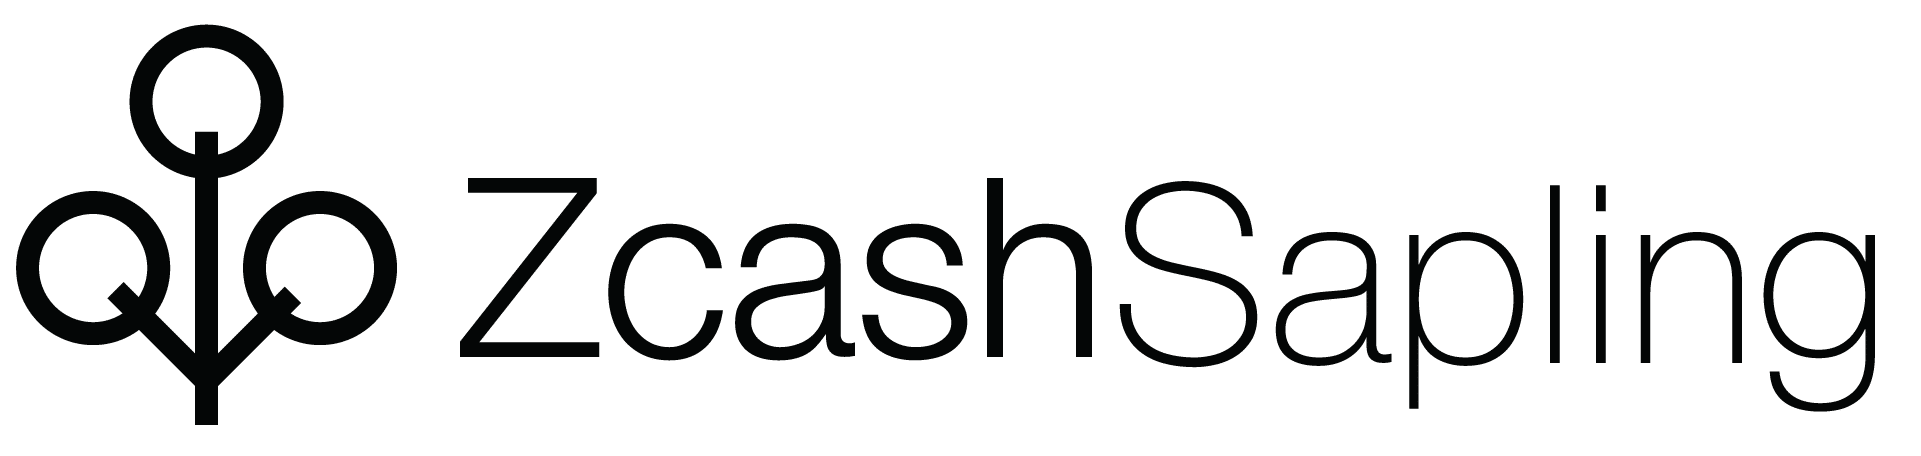 Black Zcash Sapling horizontal logo